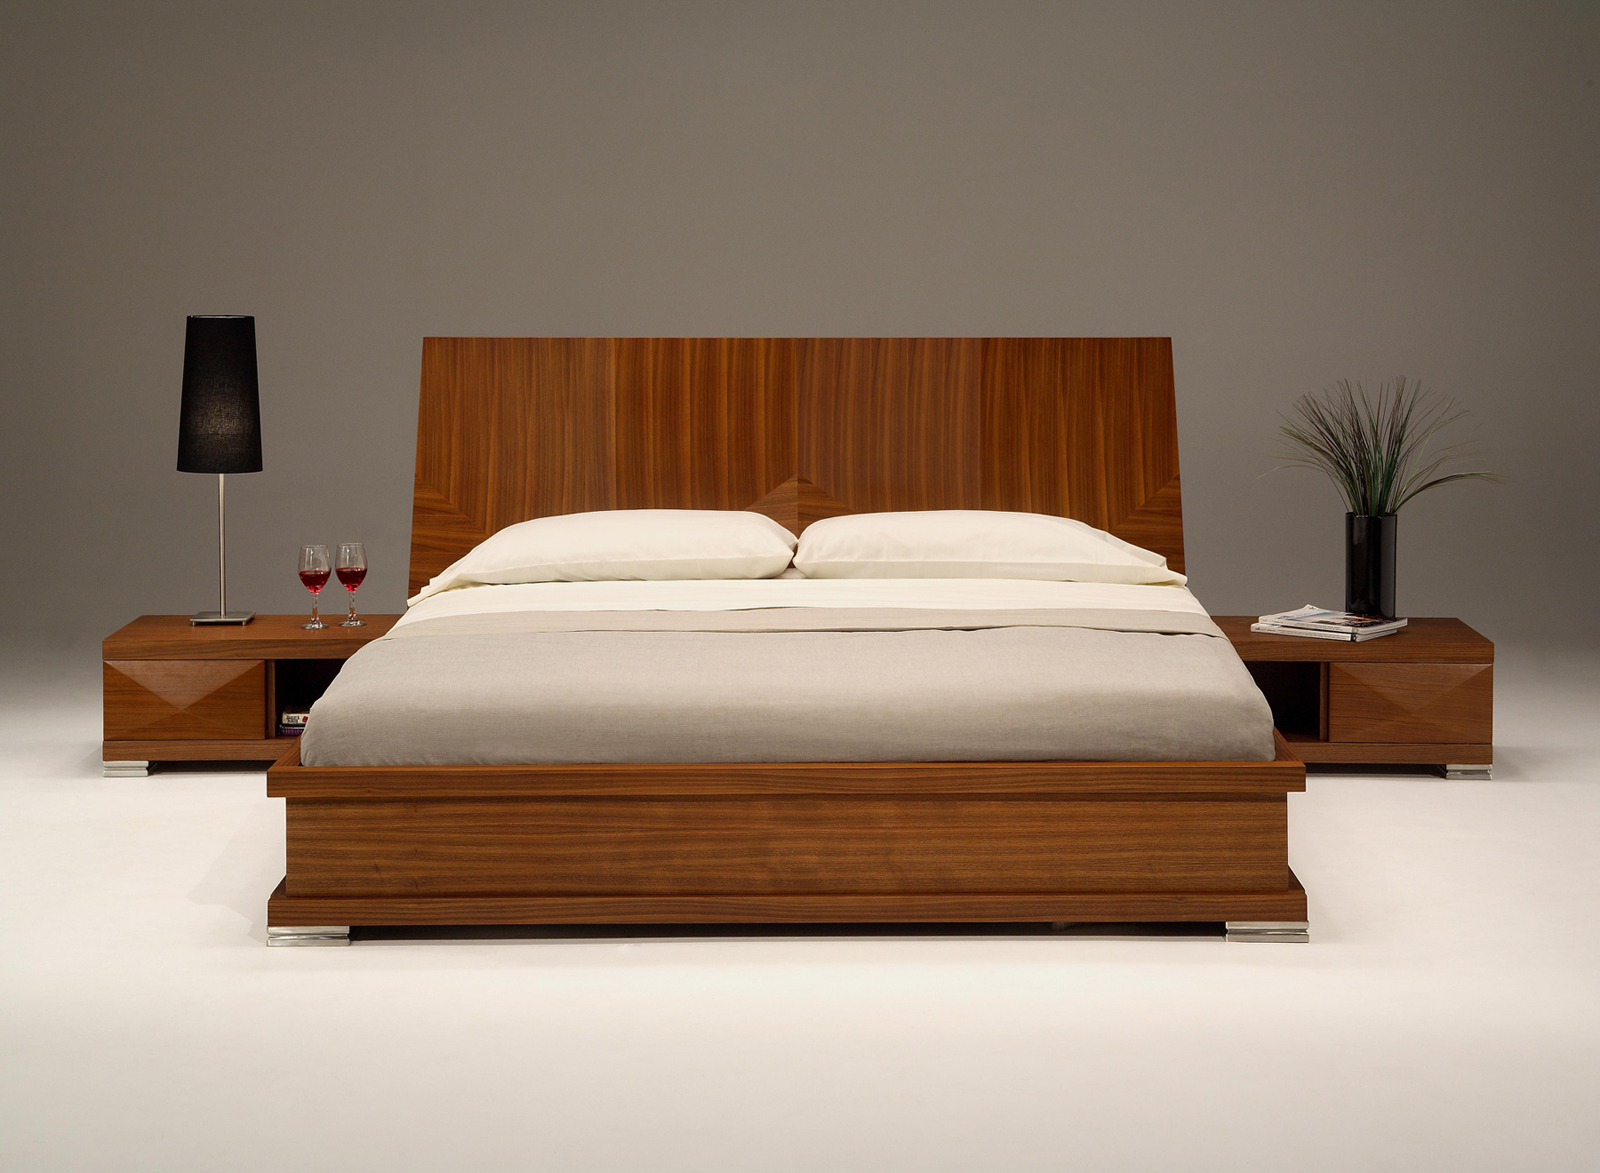 6 inspirational modern bedroom design ideas Nice bedroom furniture